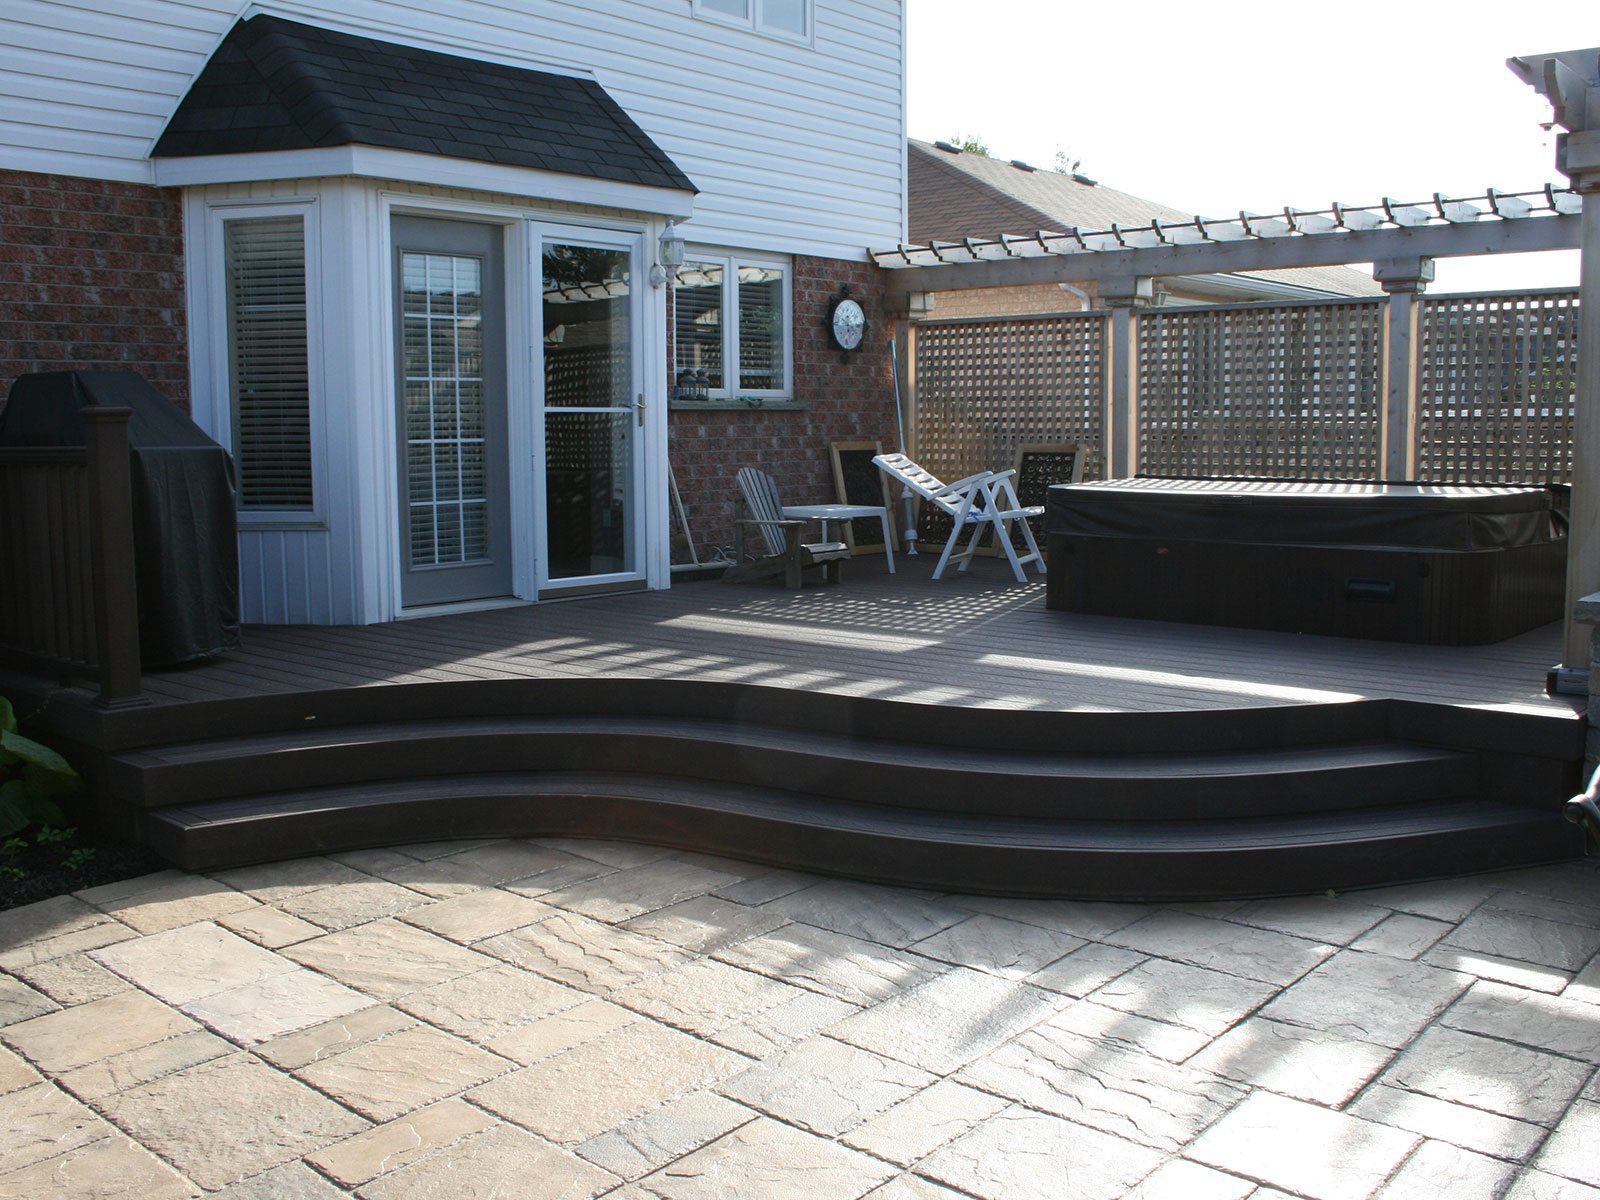 Trex Deck - Cedar Privacy Screen - Hot Tub